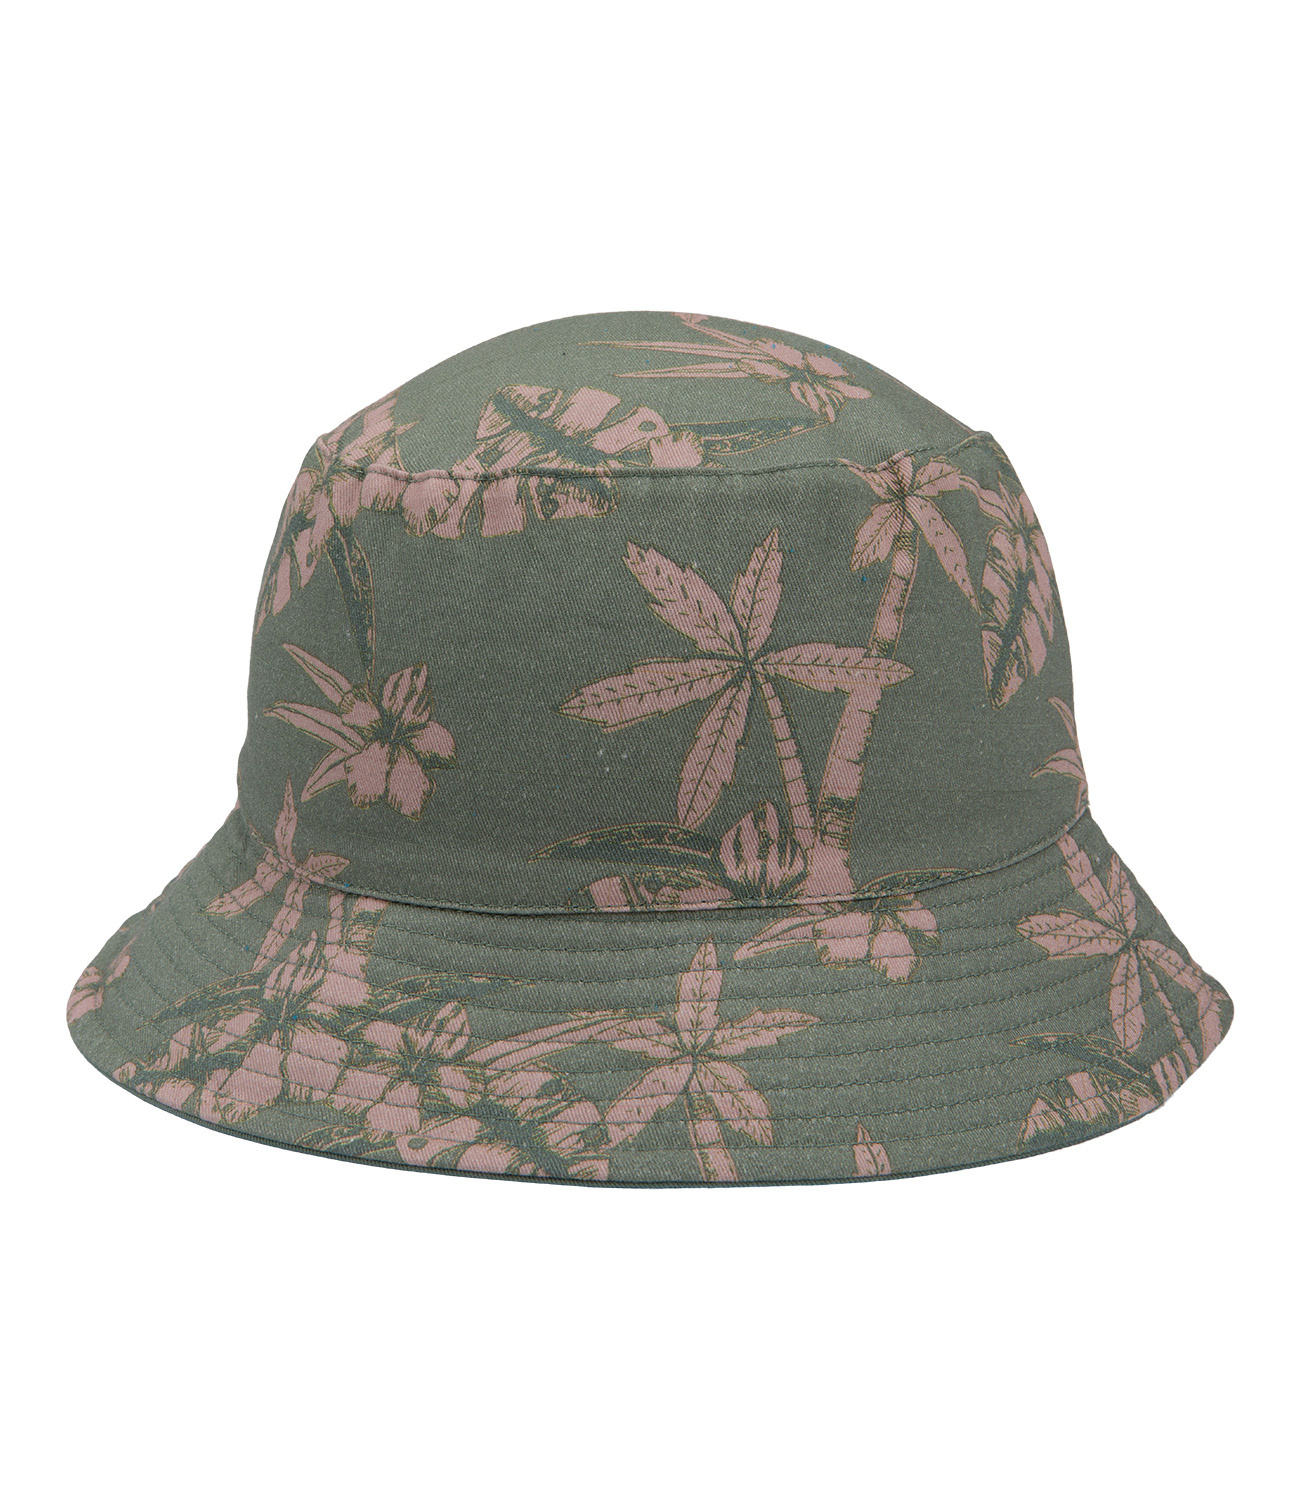 Bucket Hat im Blumenmuster-Design